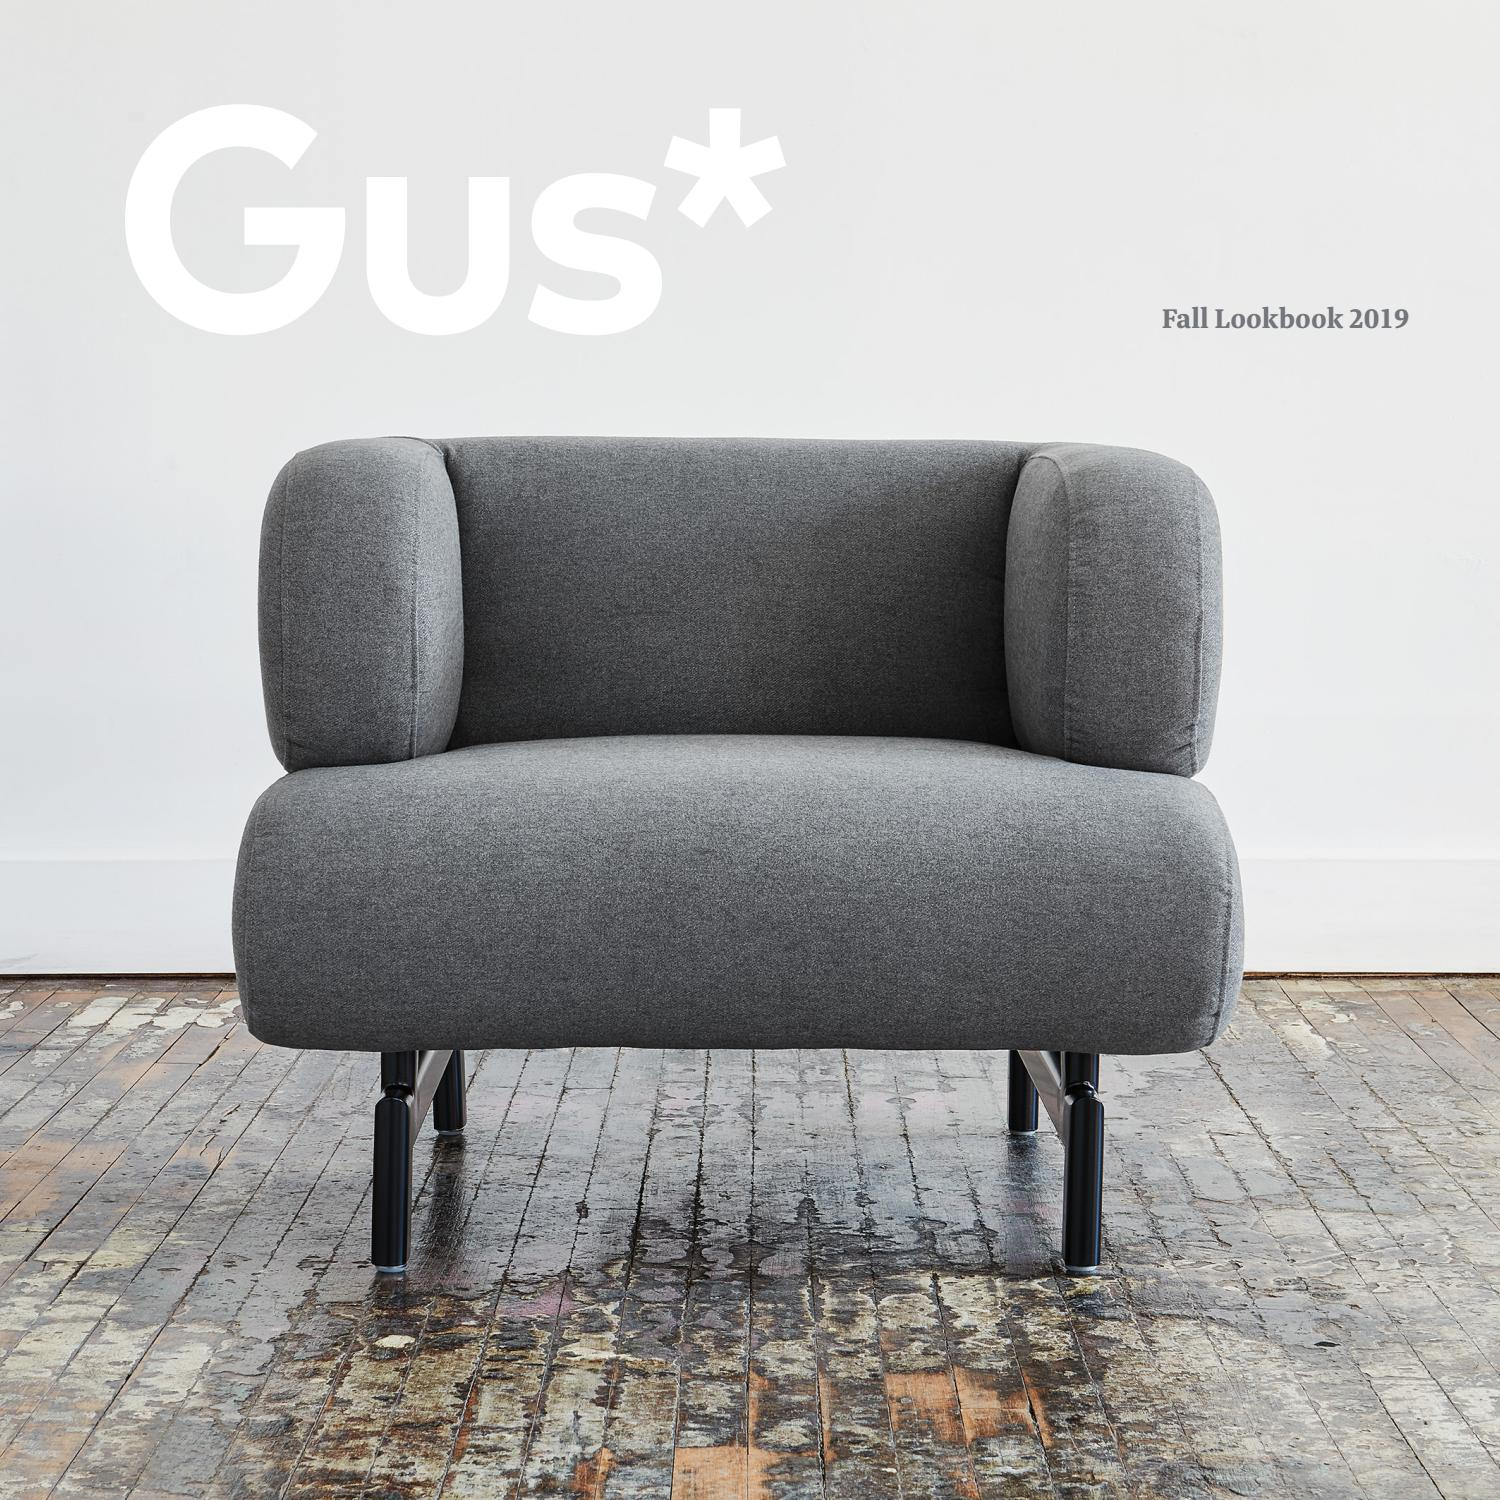 Pleasing Gus Modern Fall 2019 Lookbook By Gus Modern Issuu Pabps2019 Chair Design Images Pabps2019Com